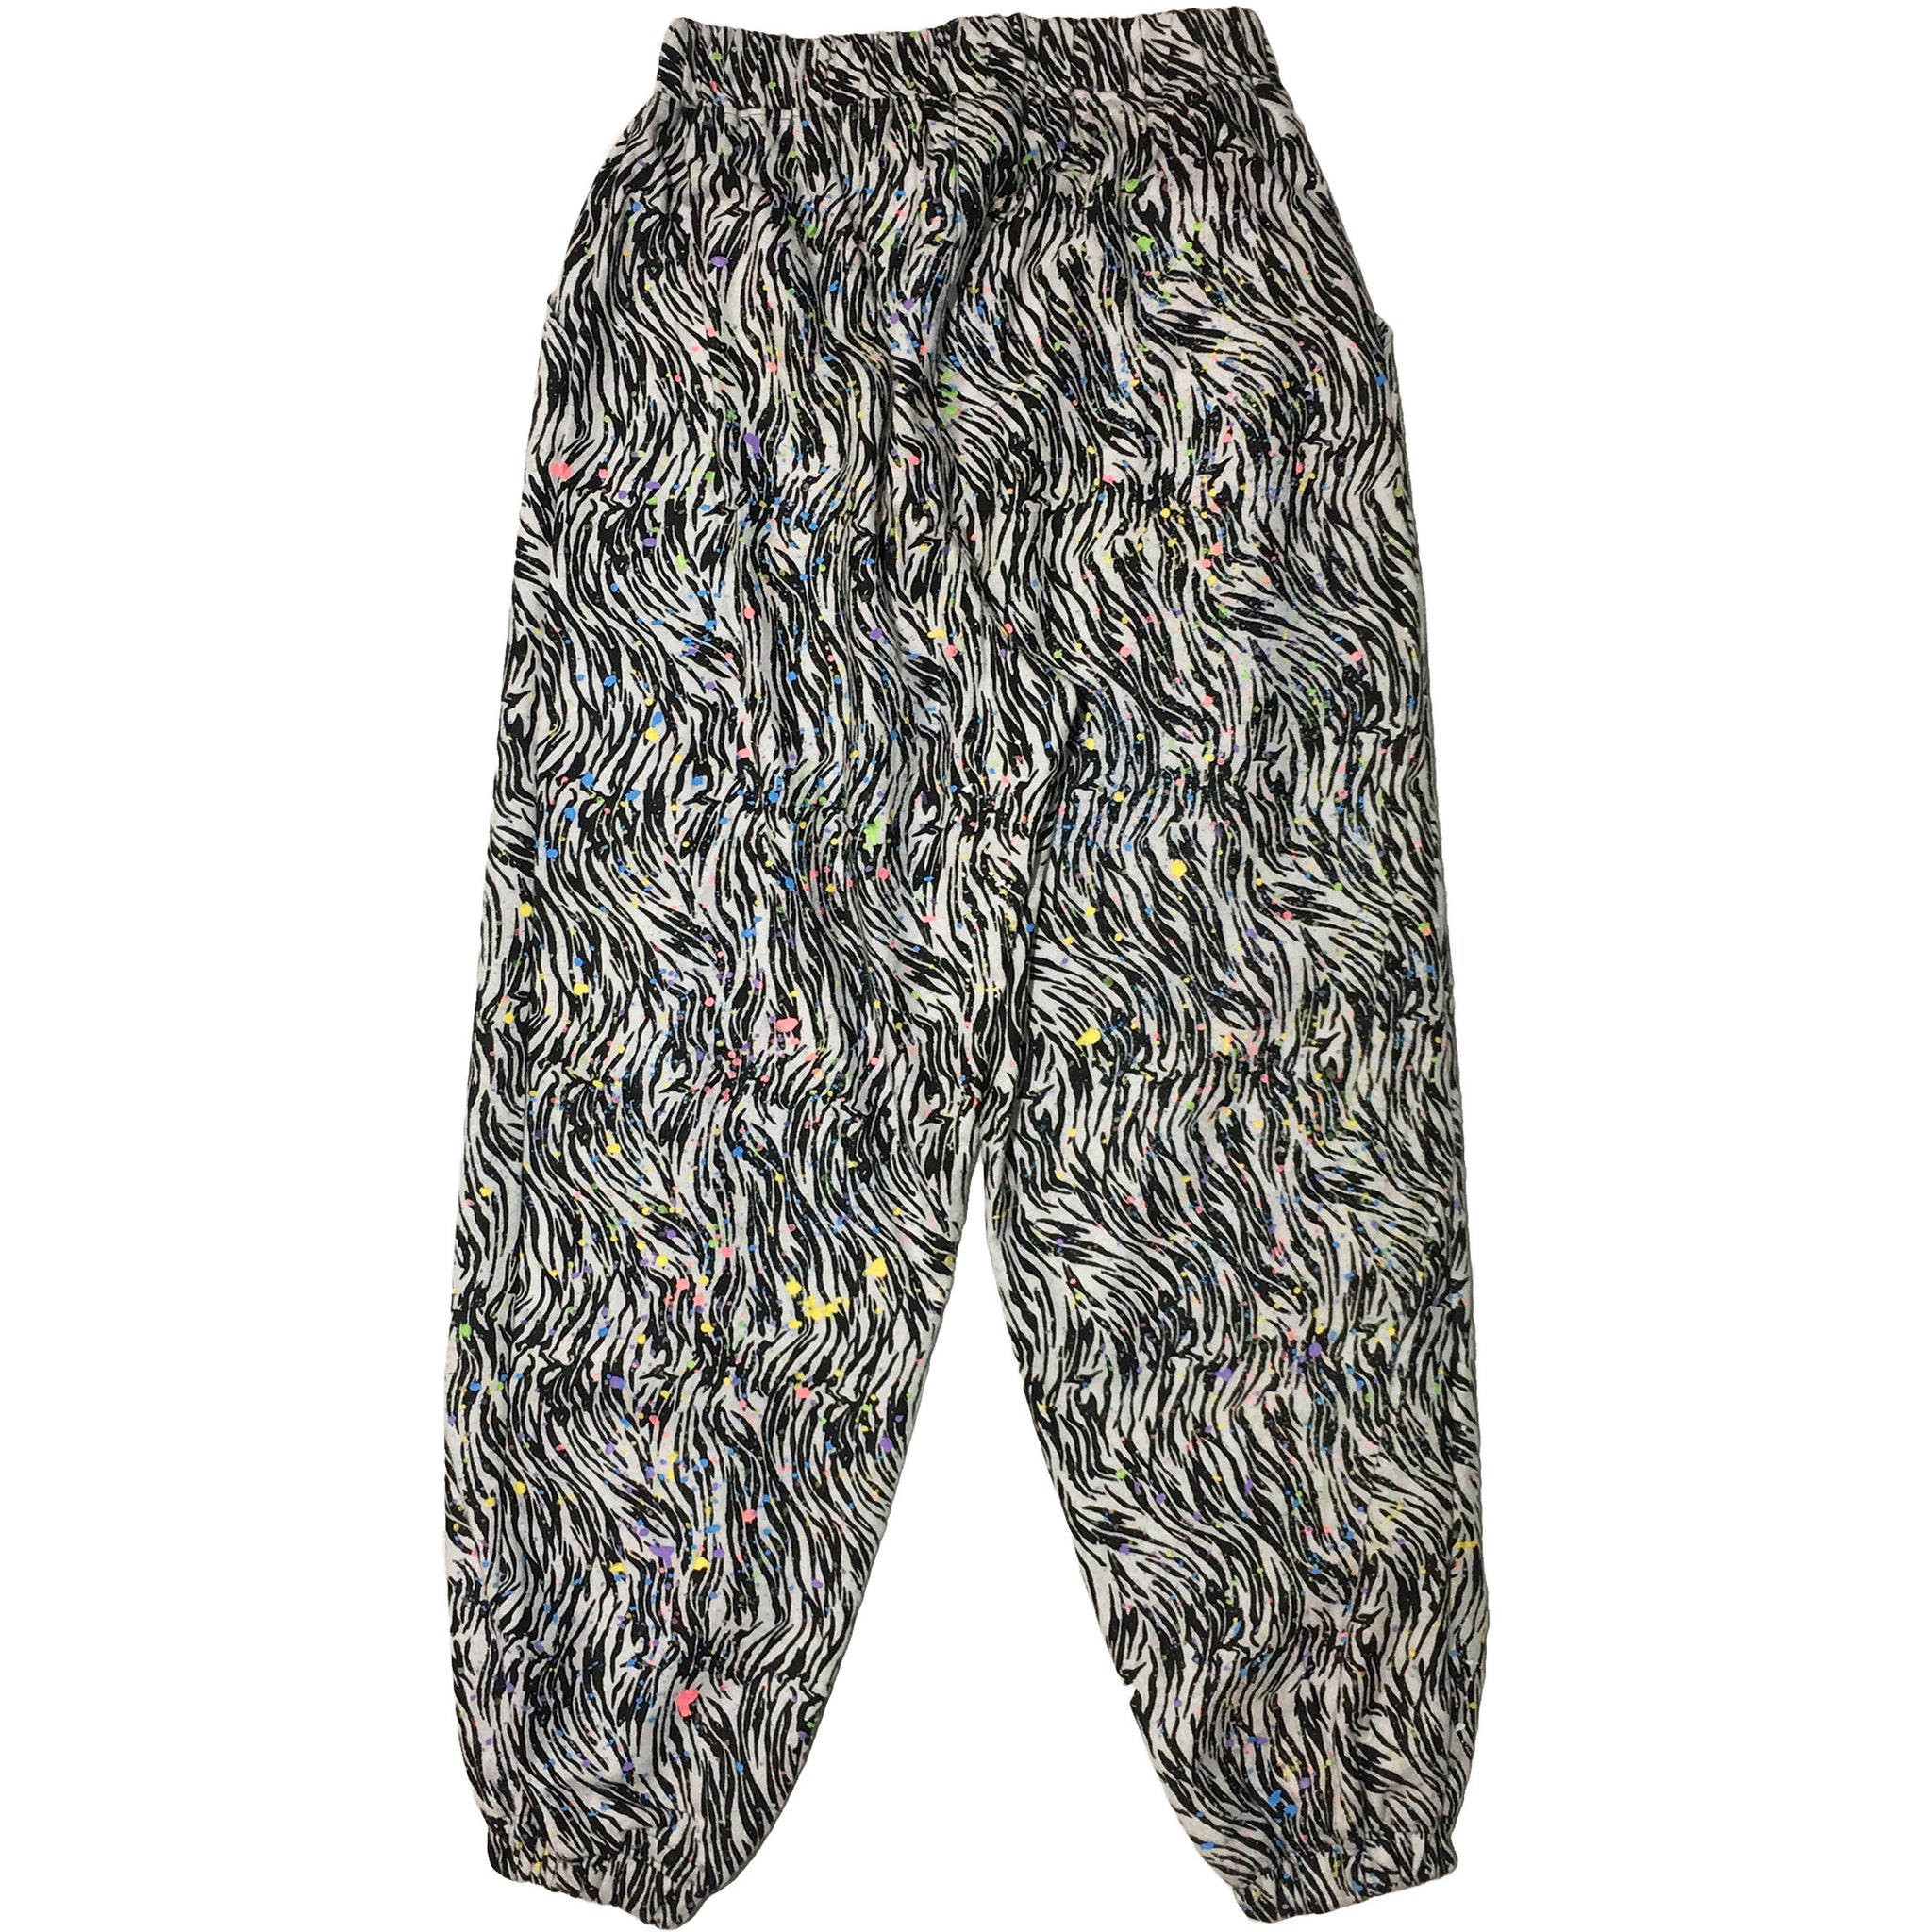 Hand Splattered Zebra Print Pants